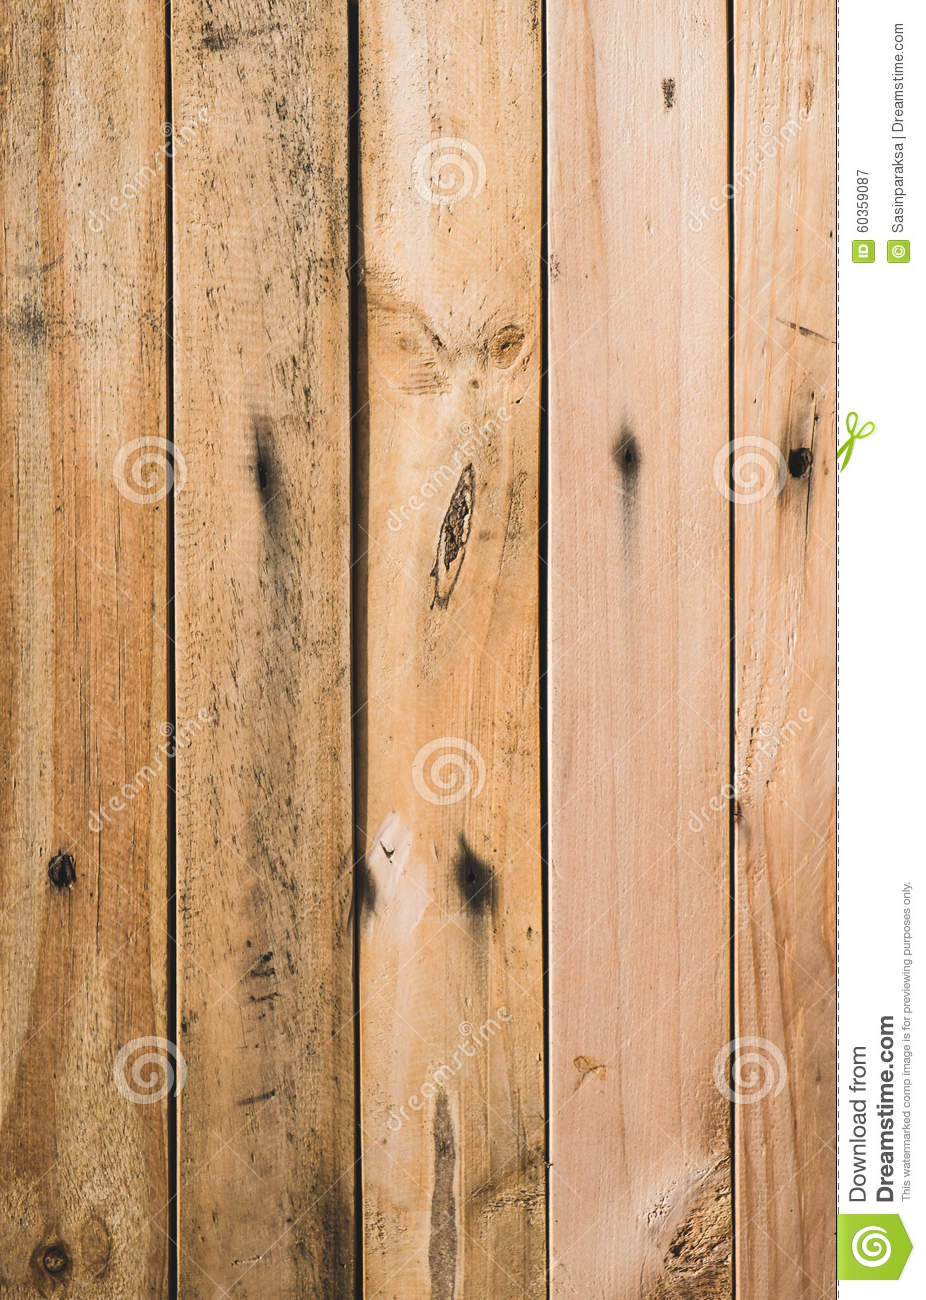 texture en bois de panneau photo stock image 60359087. Black Bedroom Furniture Sets. Home Design Ideas